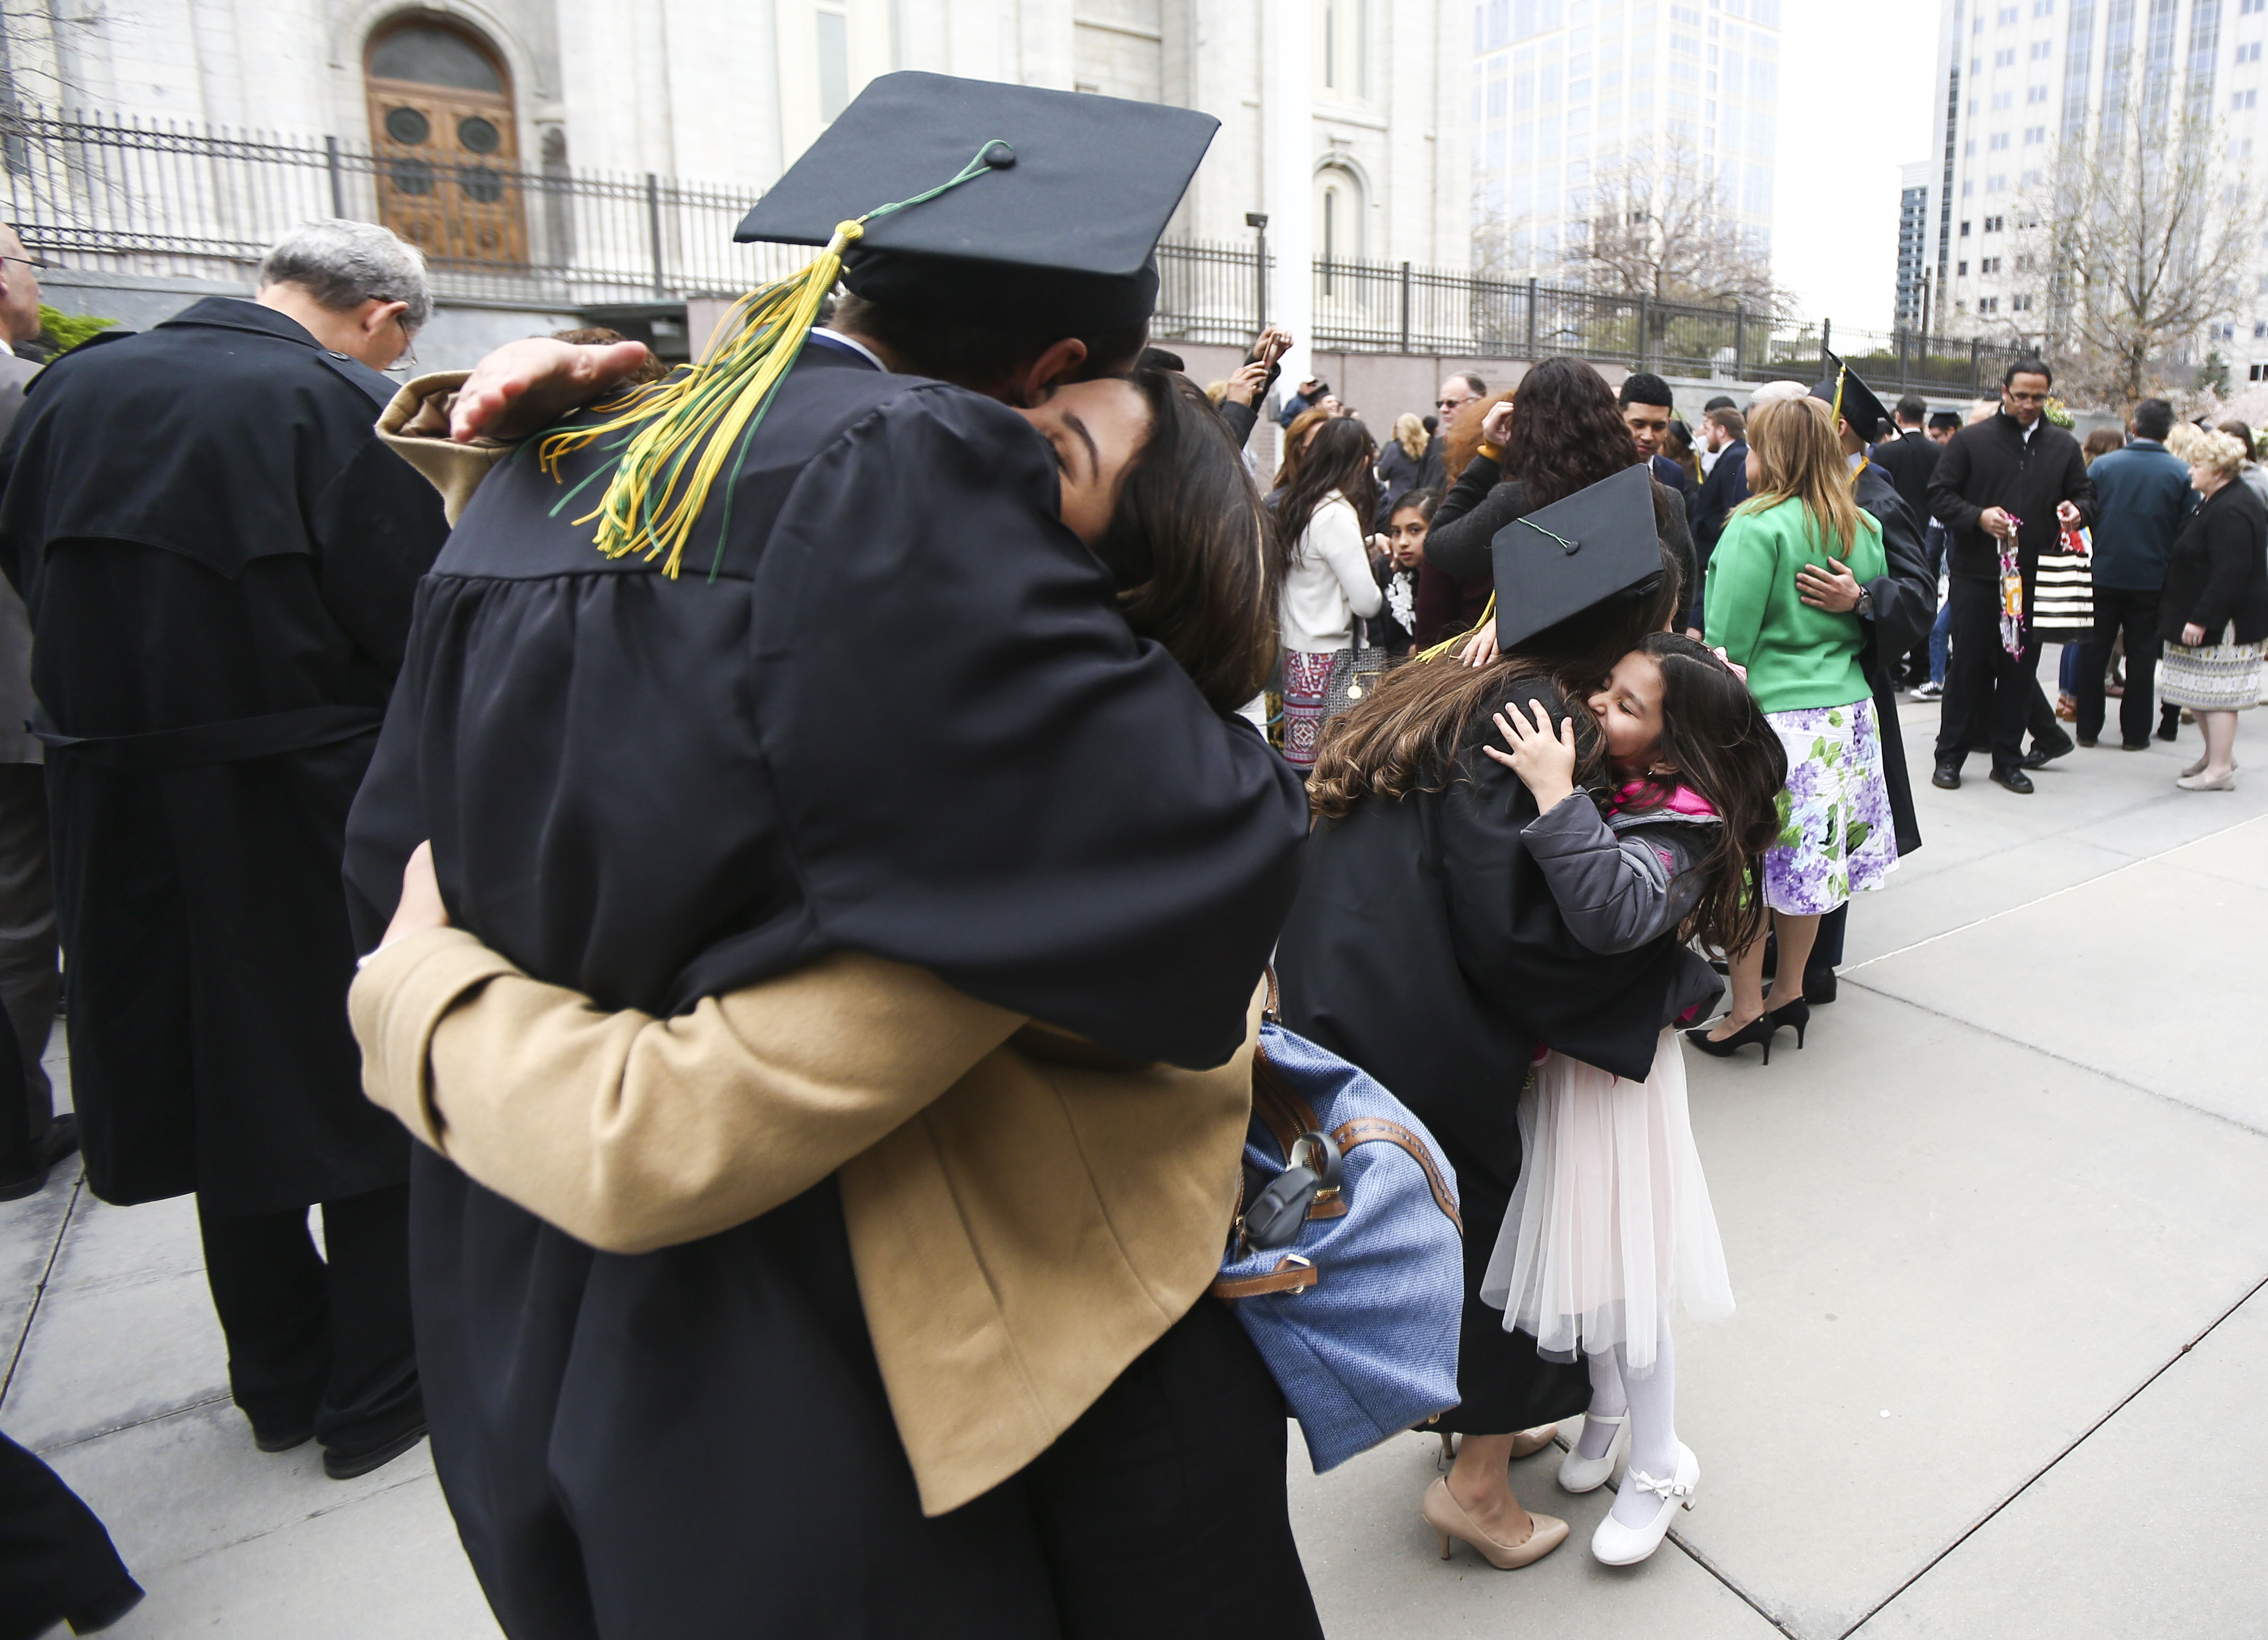 LDS business college students celebrate their graduation at the Tabernacle on Temple Square in Salt Lake City on Friday, April 12, 2019.